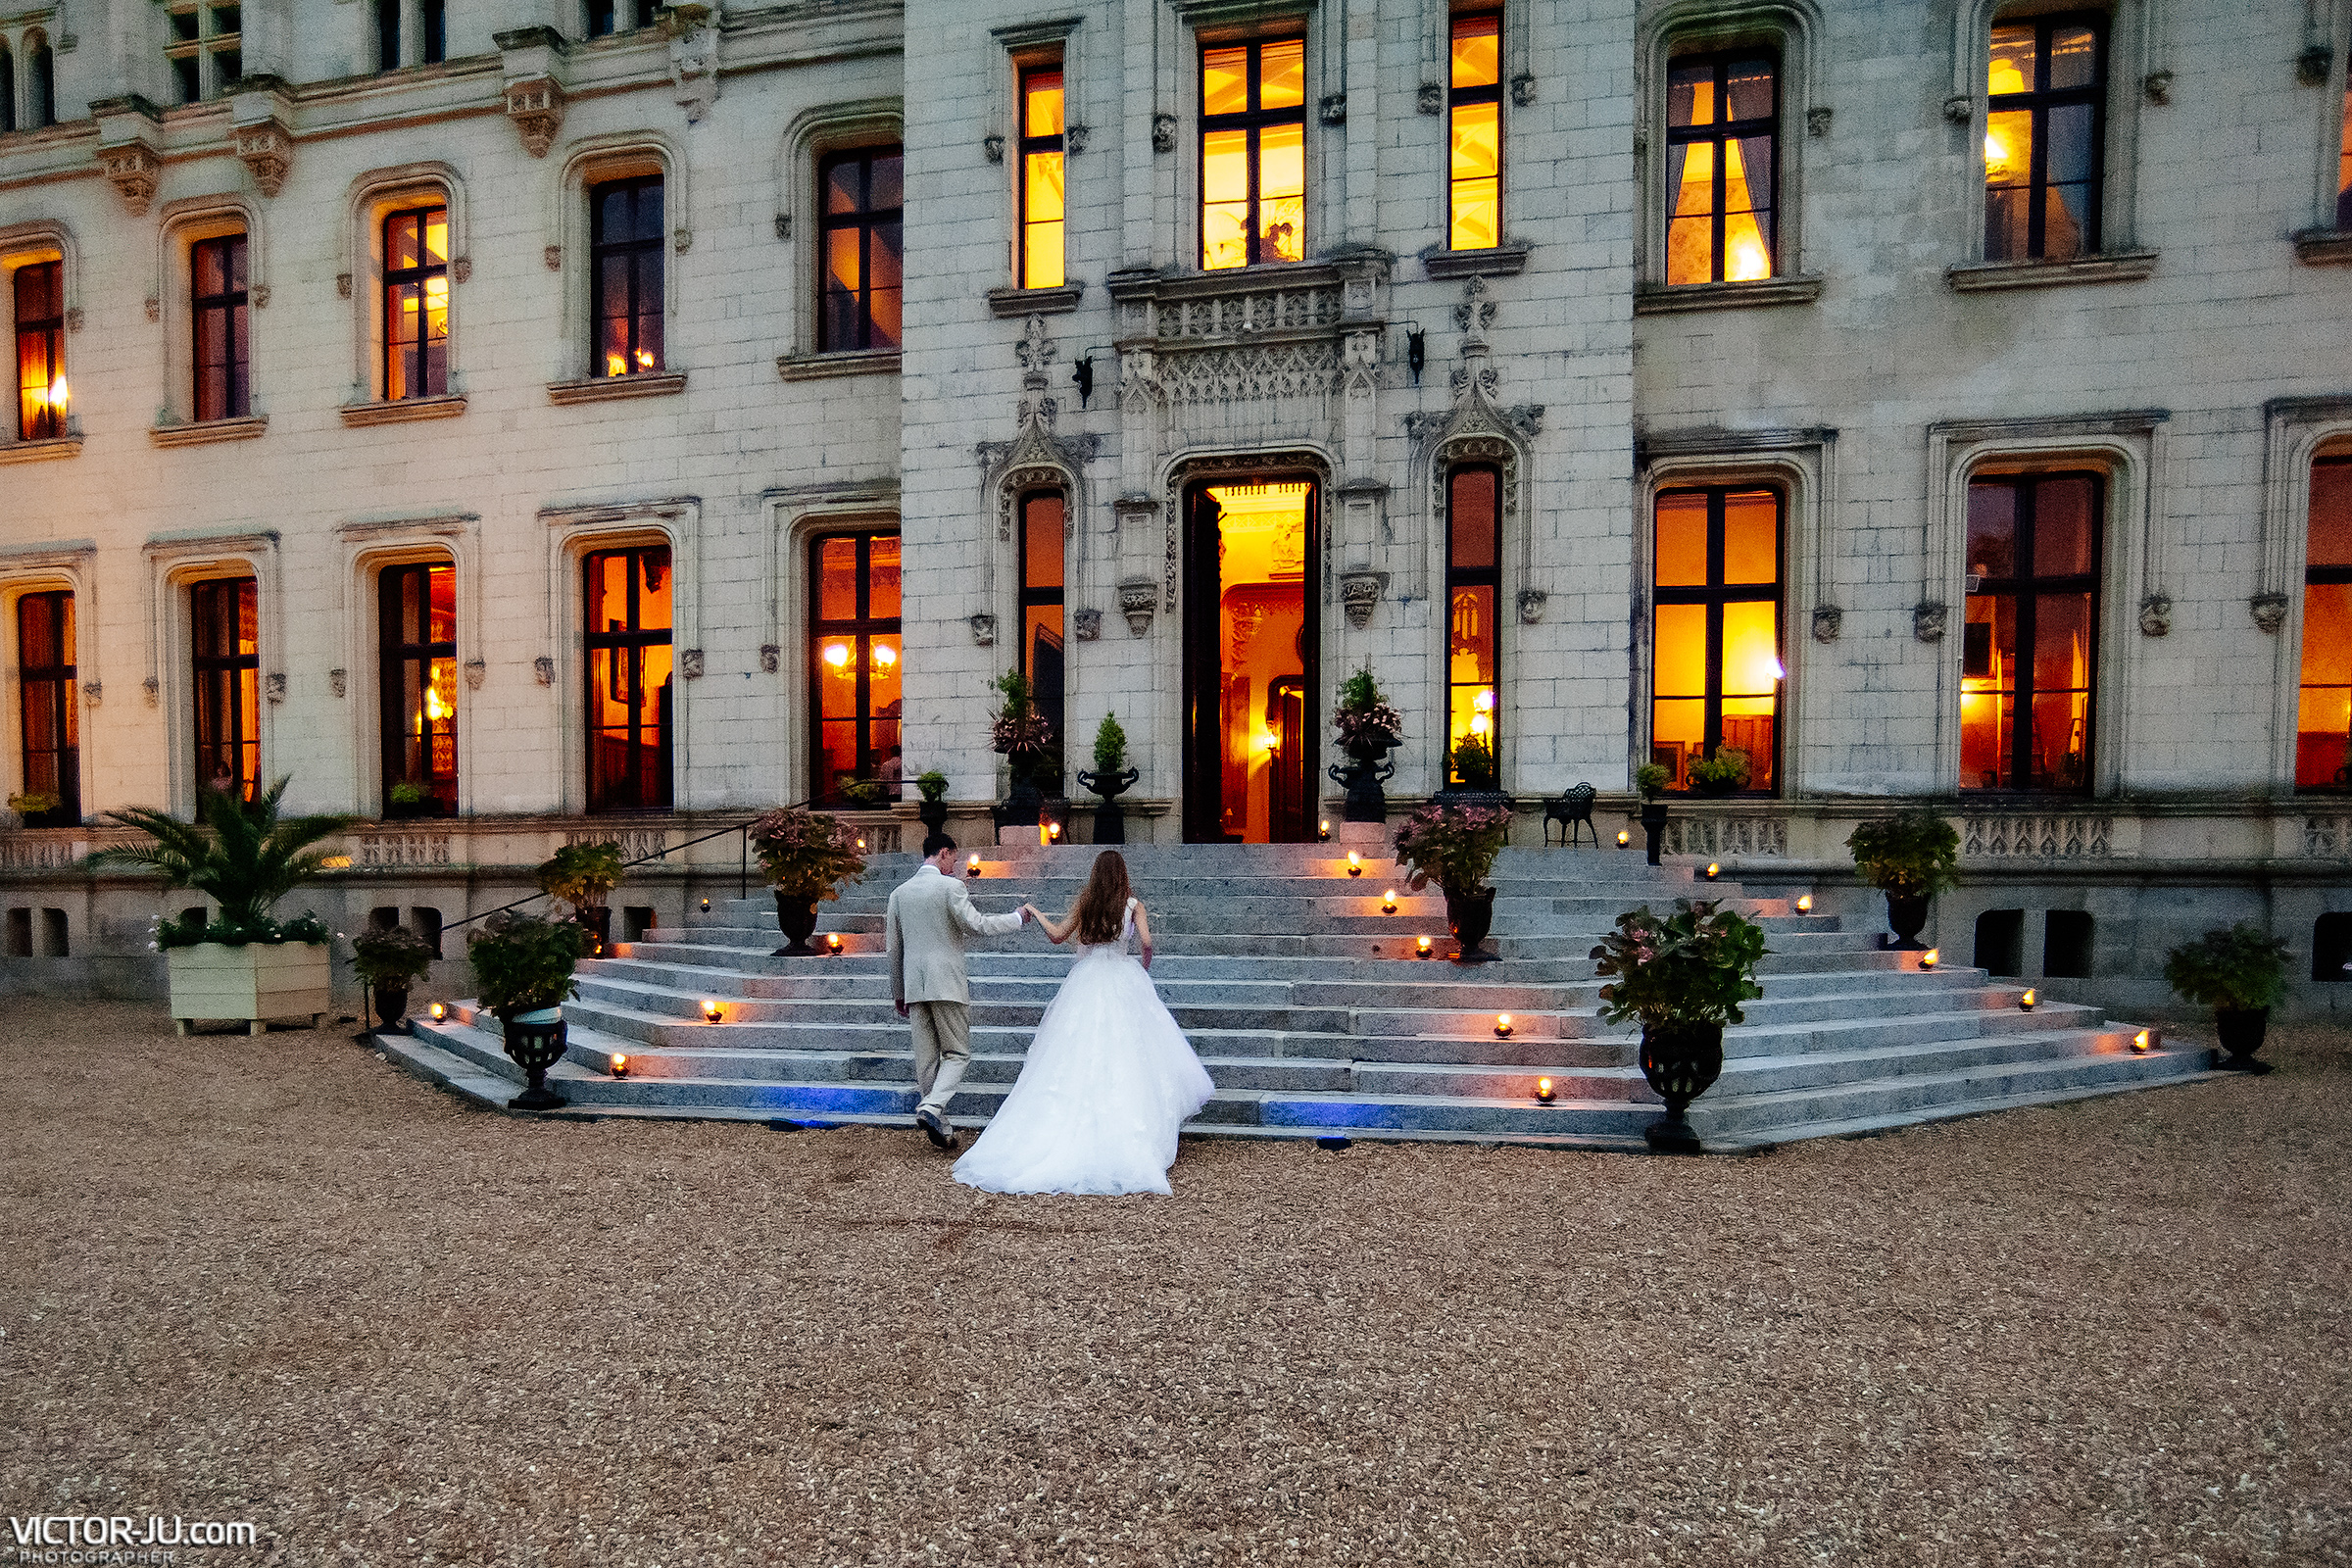 Wedding photographer for a wedding in France